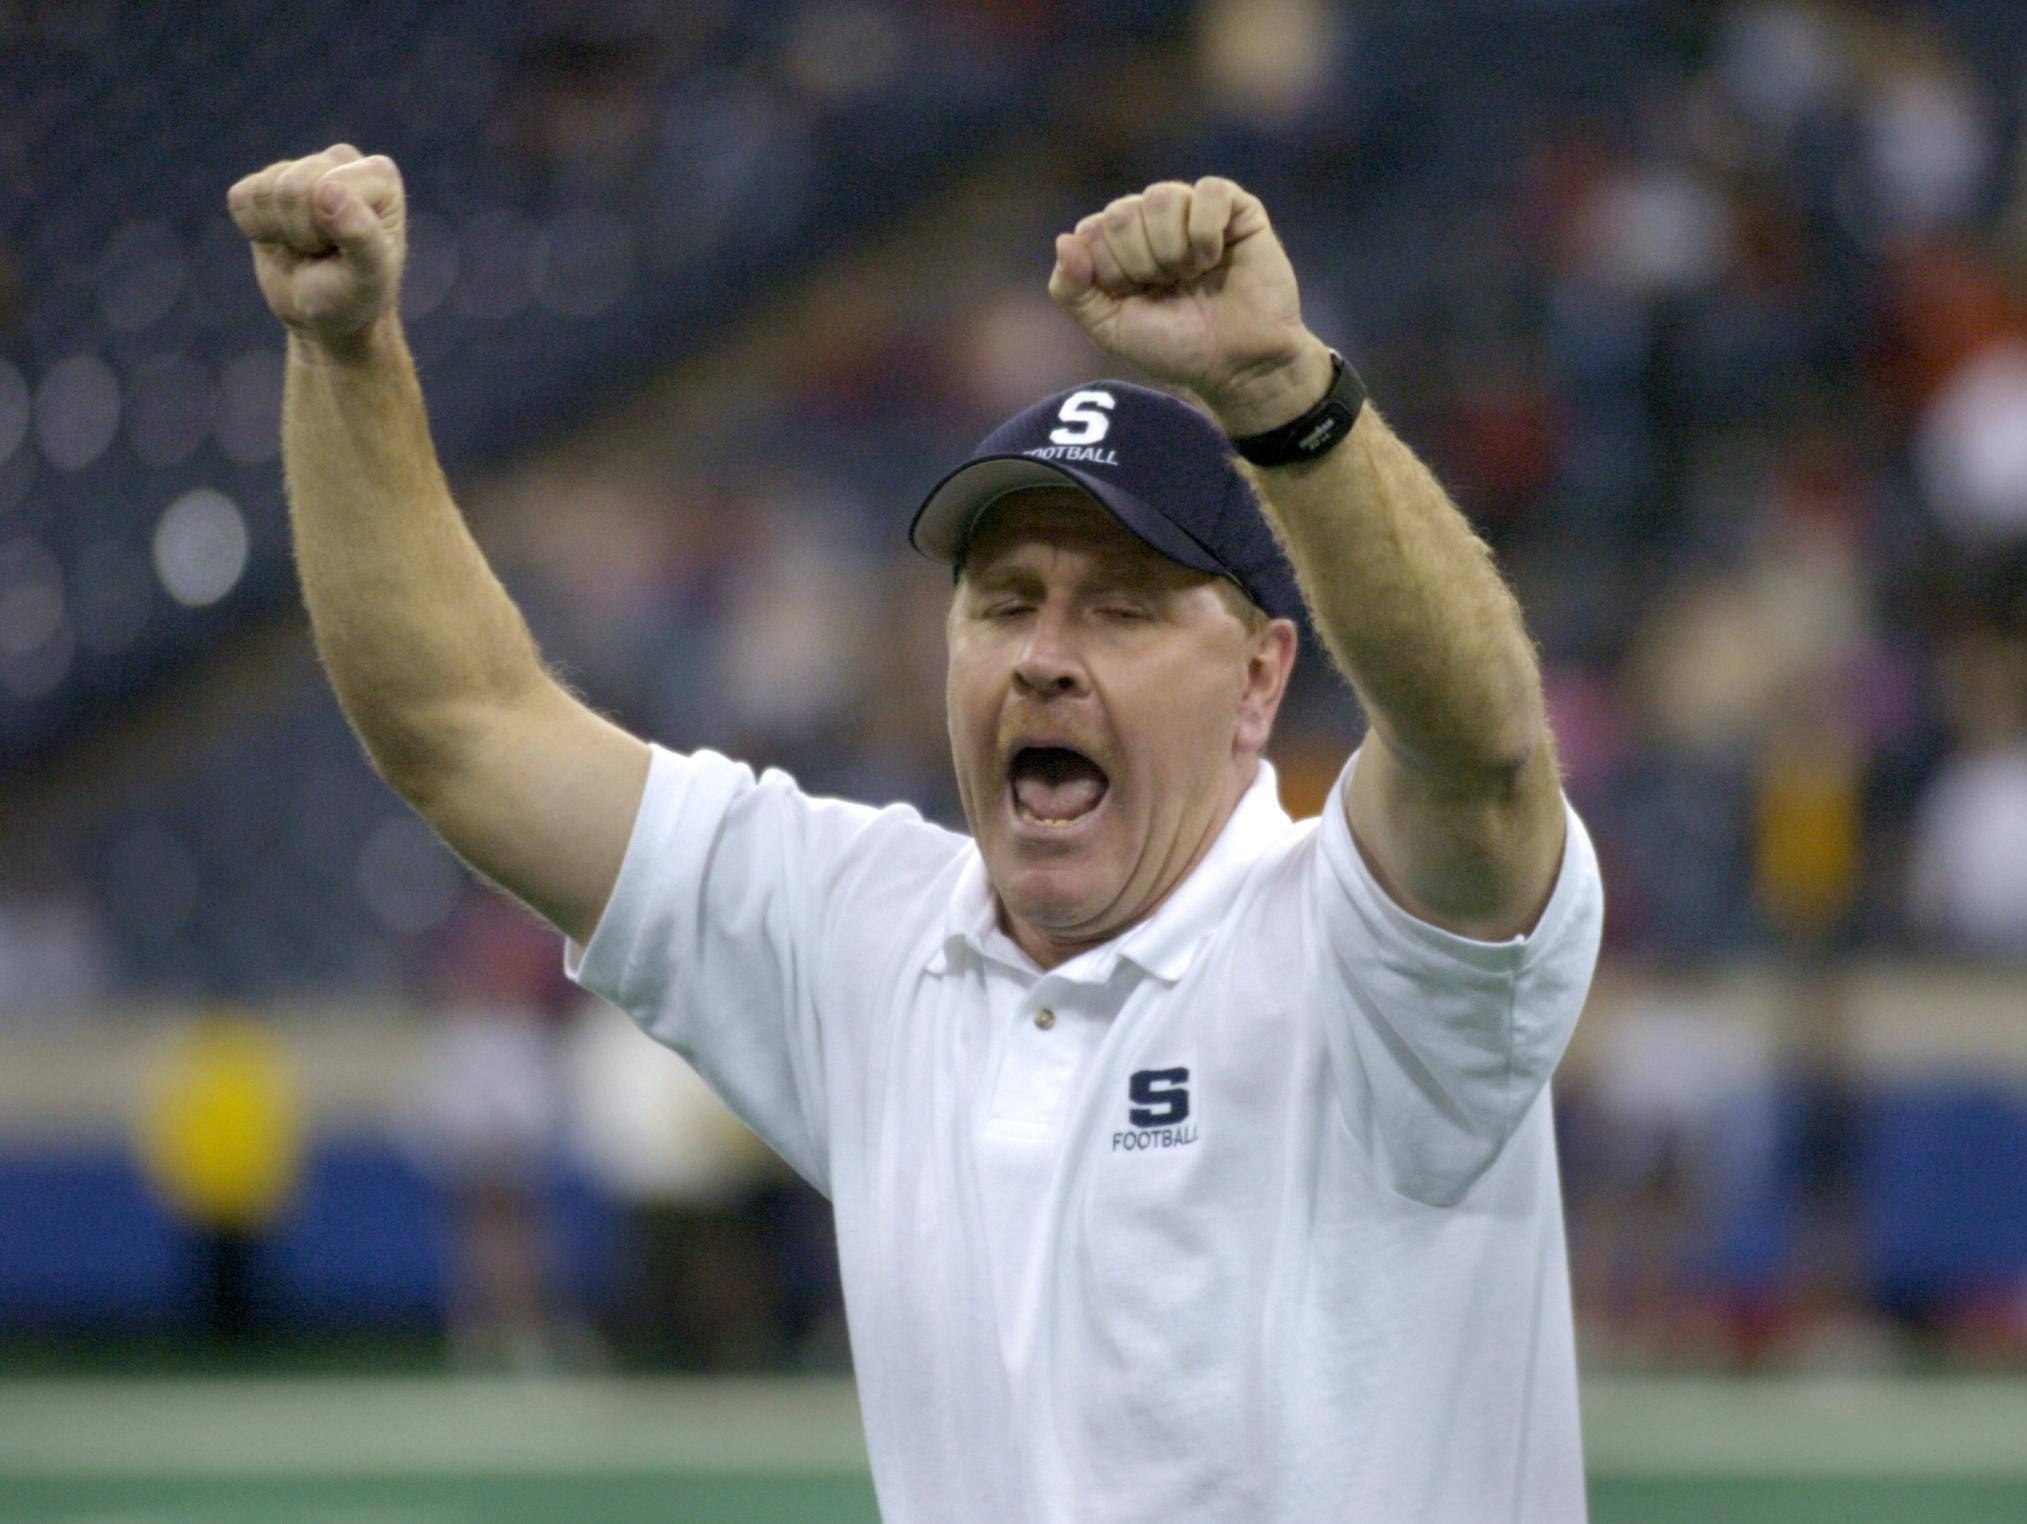 Brian Moore, then with Seeger, celebrates his team's 20-7 victory over Cardinal Ritter High School in the IHSAA Class 1A football finals in November 2004.Indianapolis Star 11/26/04--w/story--WHS1A27--Seeger High School's head football coach Brian Moore celebrates his team's 20-7 victory over Cardinal Ritter High School in the IHSAA Class 1A football finals at the RCA Dome in Indianapolis Friday Nov. 26. Staff Photo by Joe Vitti File #106037